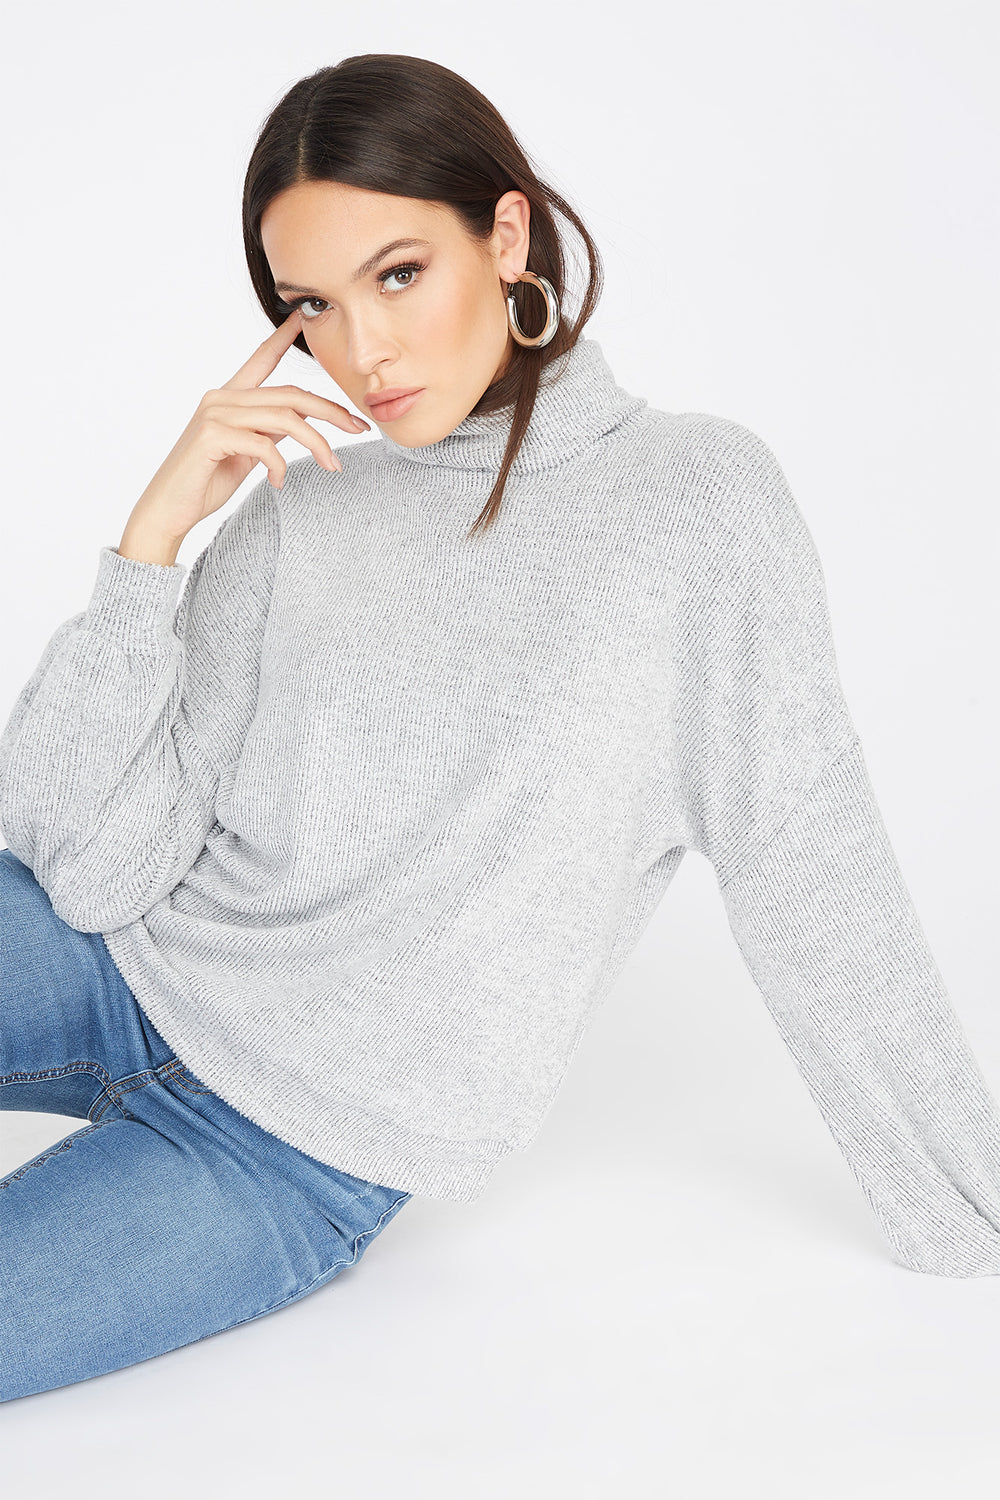 Knit Turtleneck Long Dolman Sleeve Top Light Grey